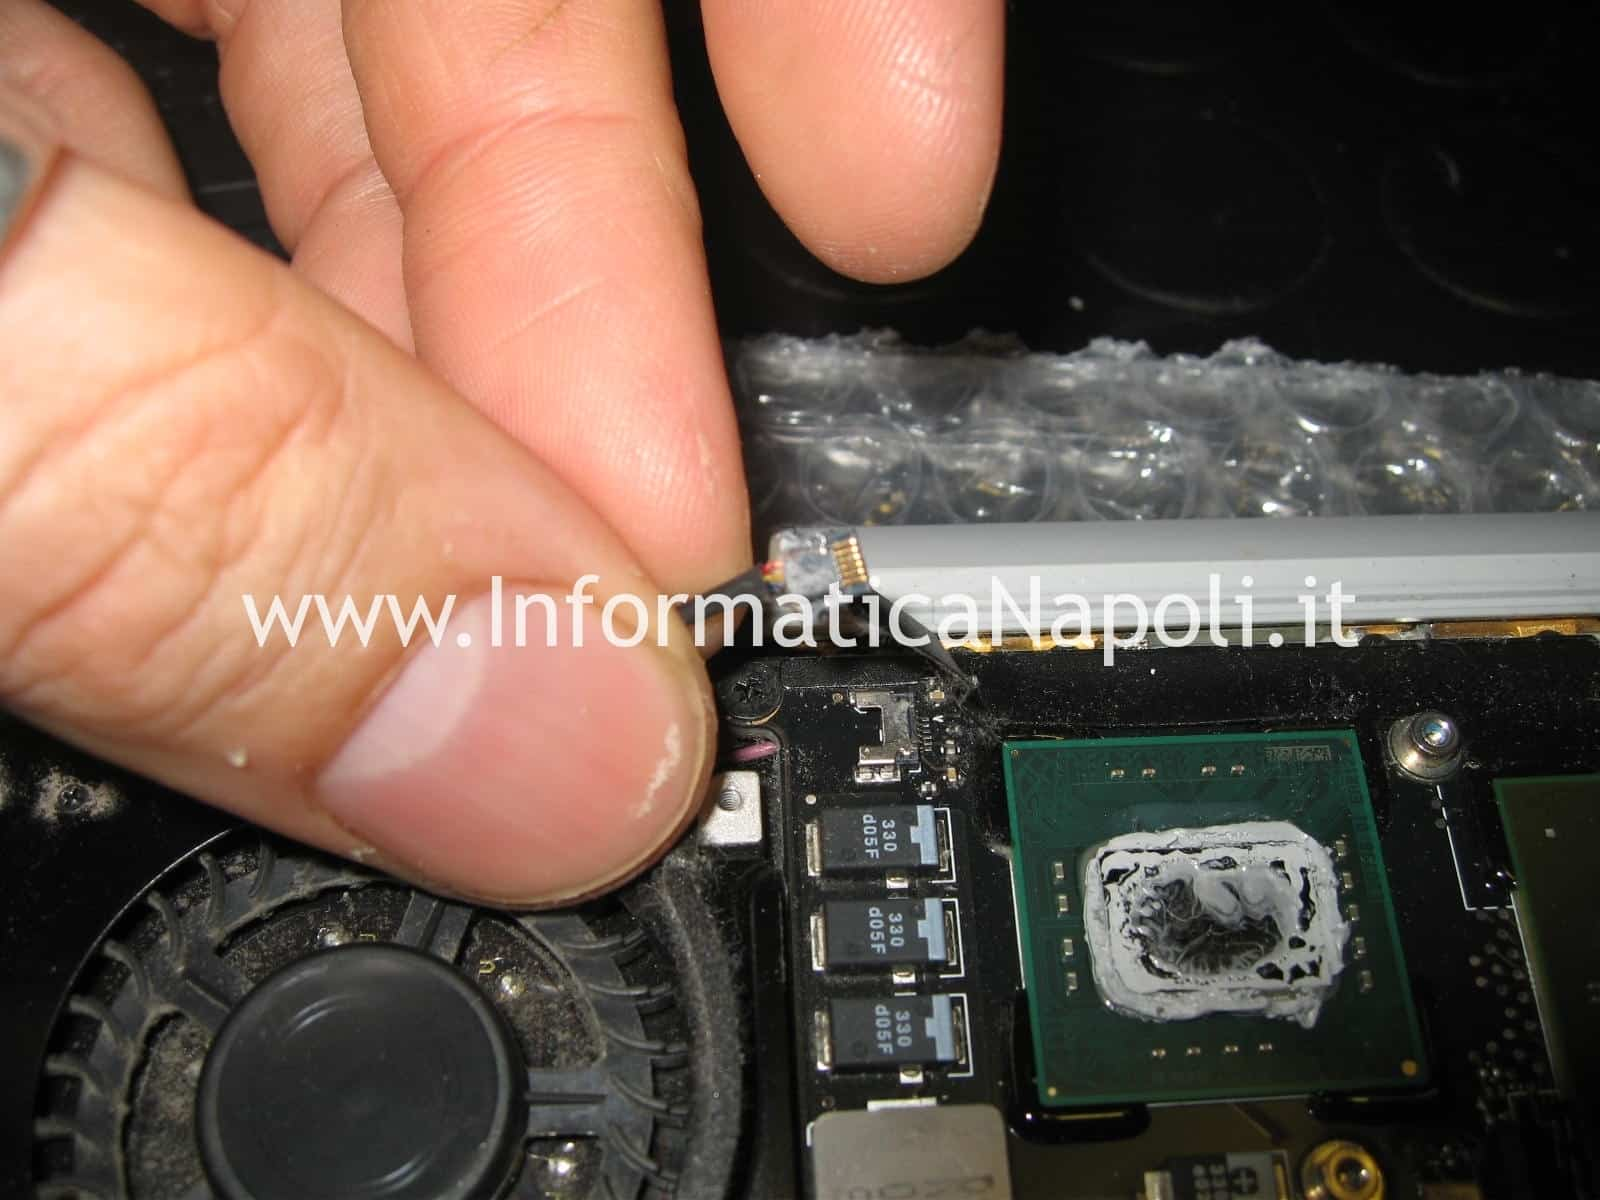 raffreddamento macbook air 13 A1237